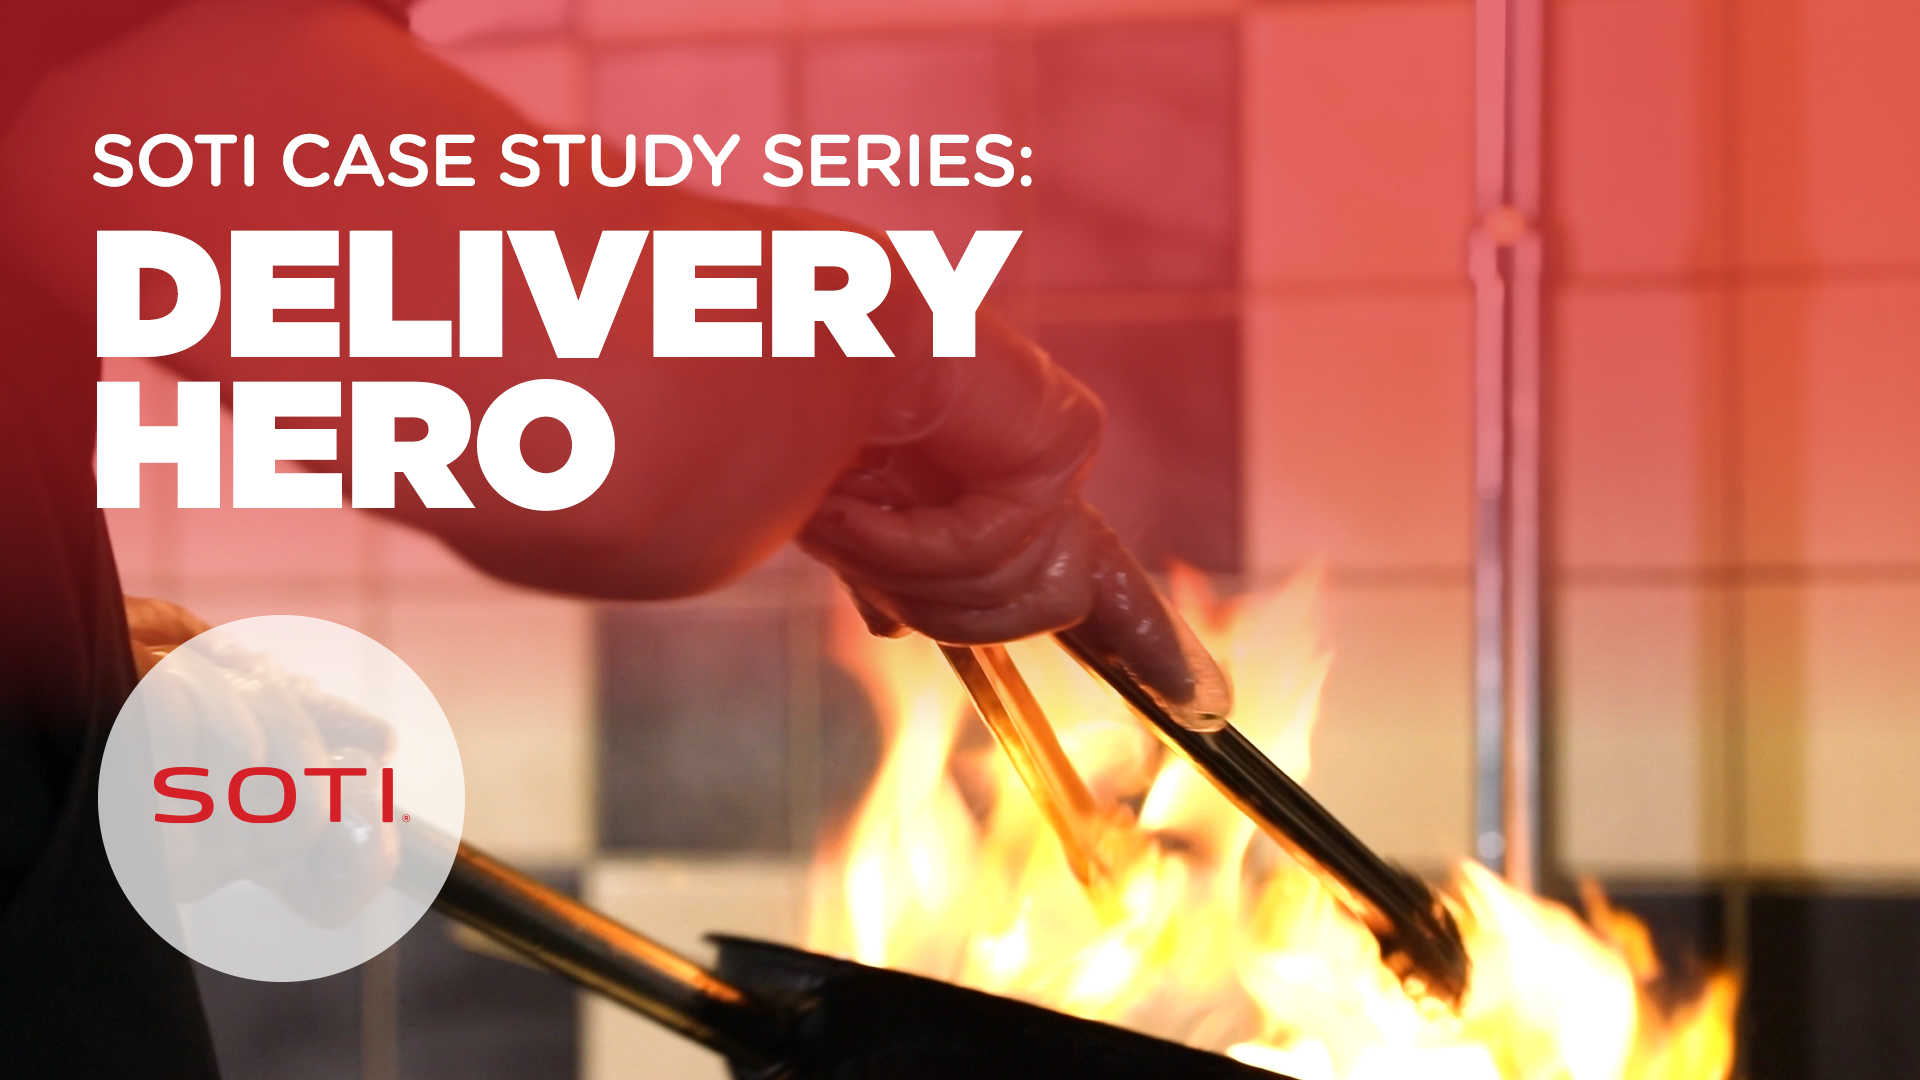 SOTI Case Study Series: Delivery Hero video